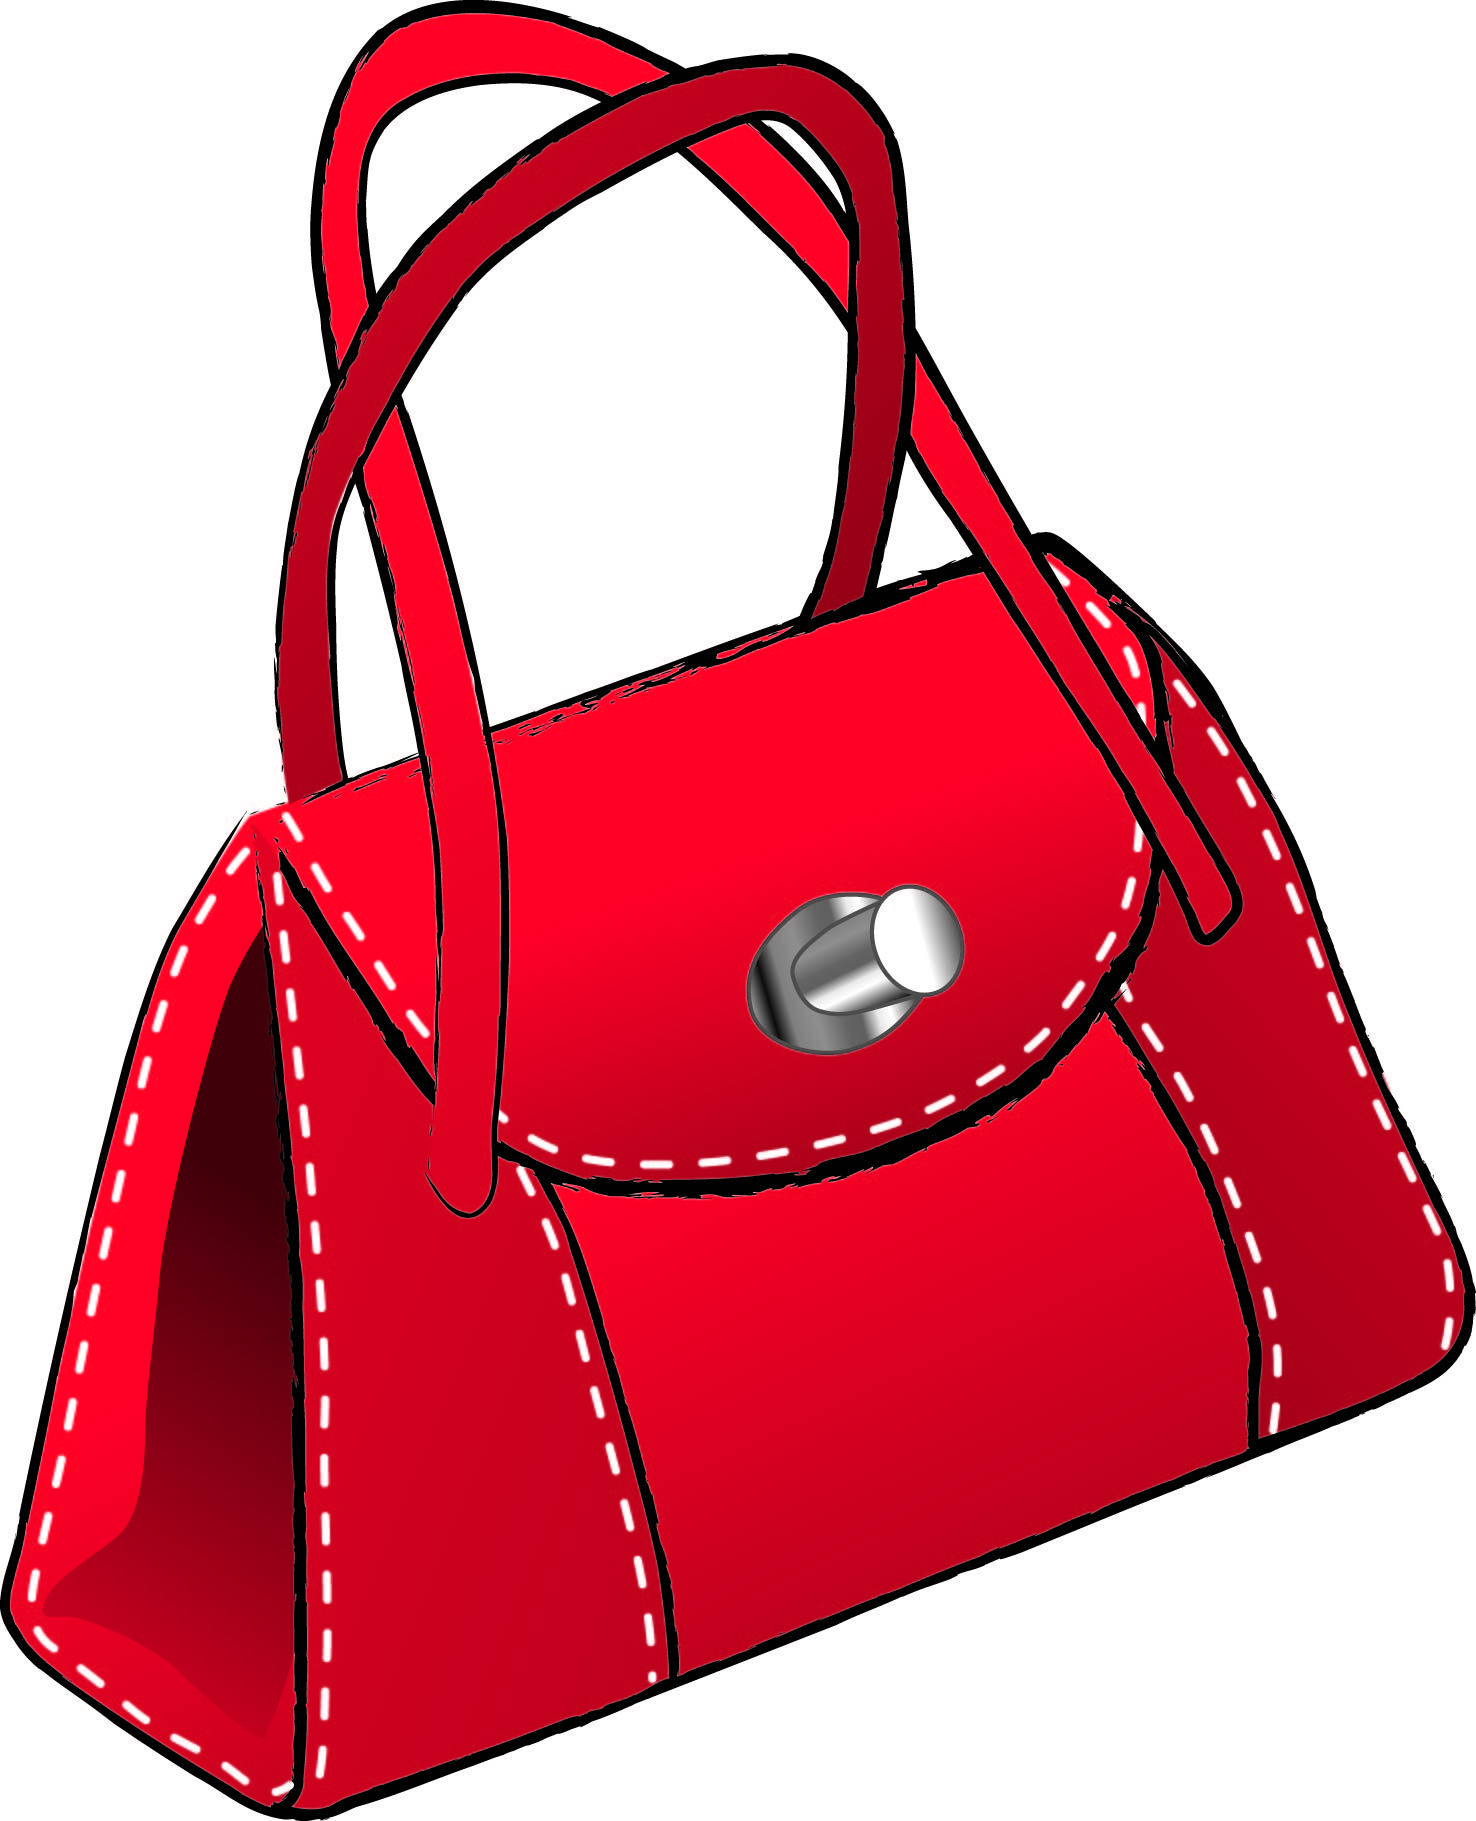 What's In Your Purse? | Purse, Red purses and Shoulder bags